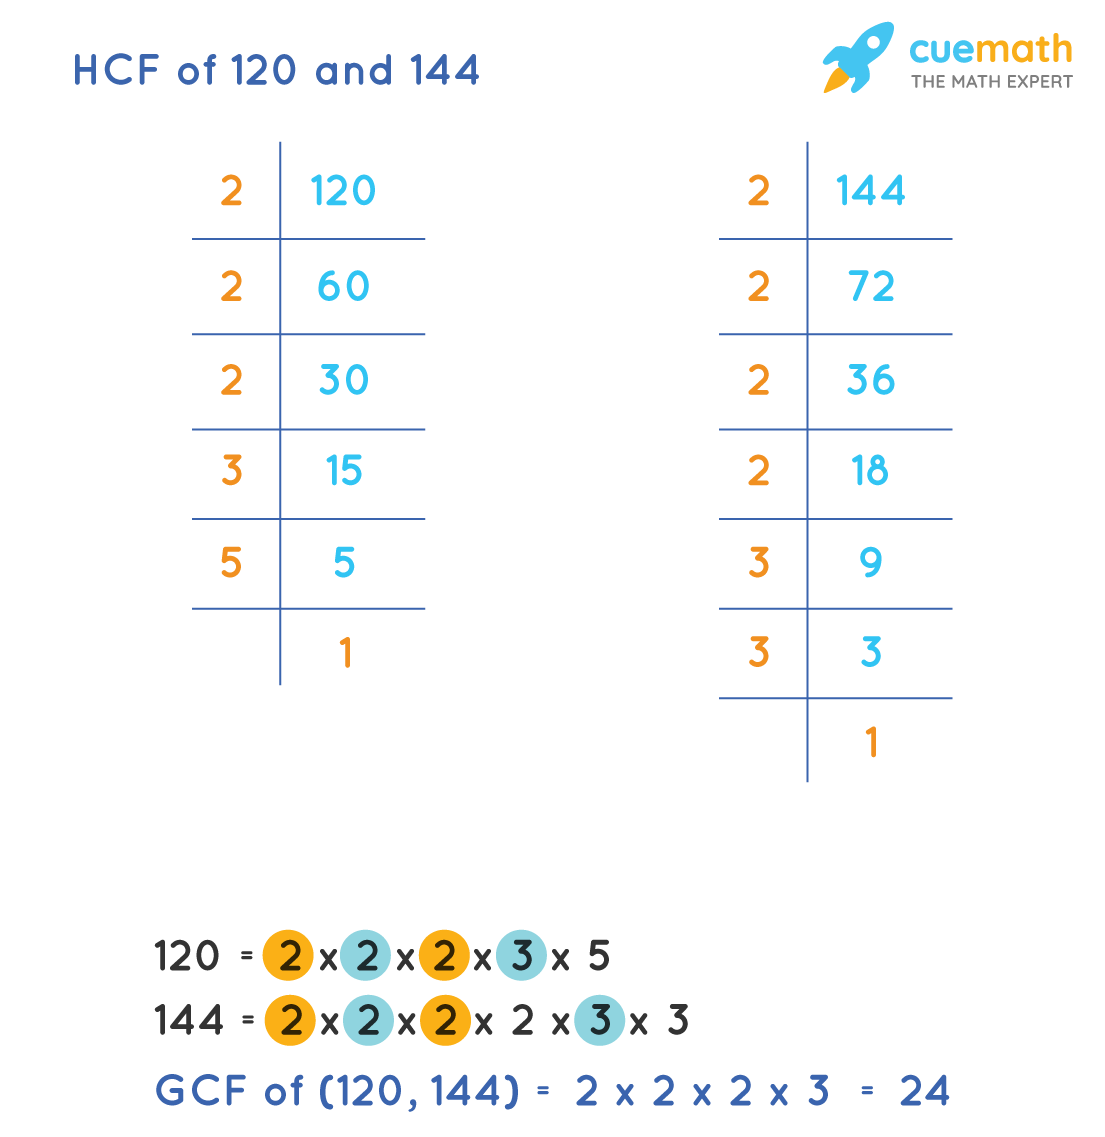 HCF of 120 and 144 by prime factorization method